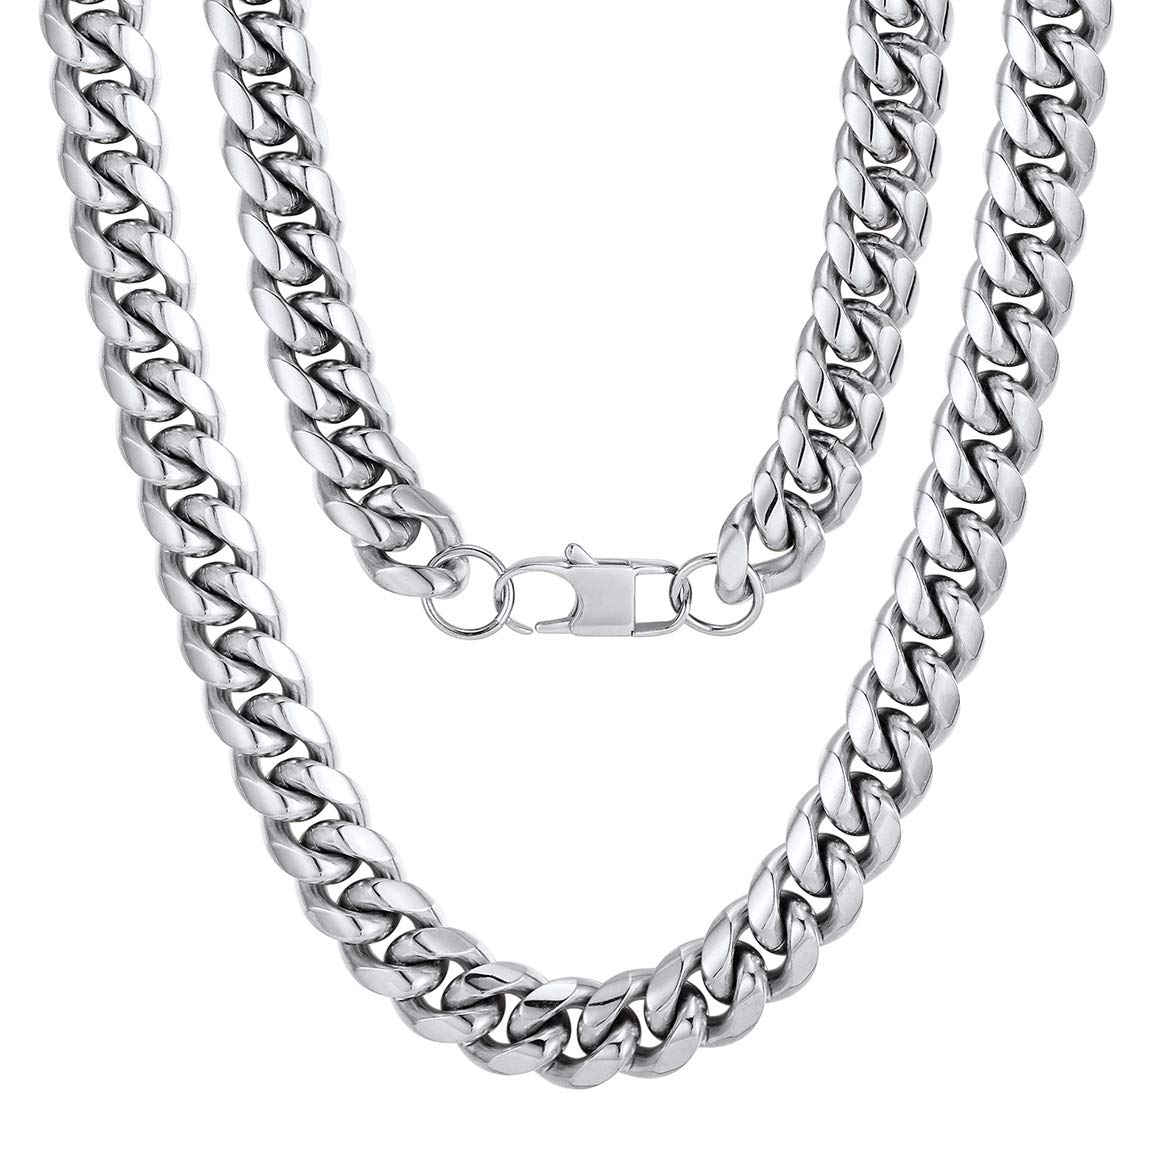 Men Chunky Miami Cuban Chain Necklace silver plasted 6 9 14mm Width 18 20 22 24